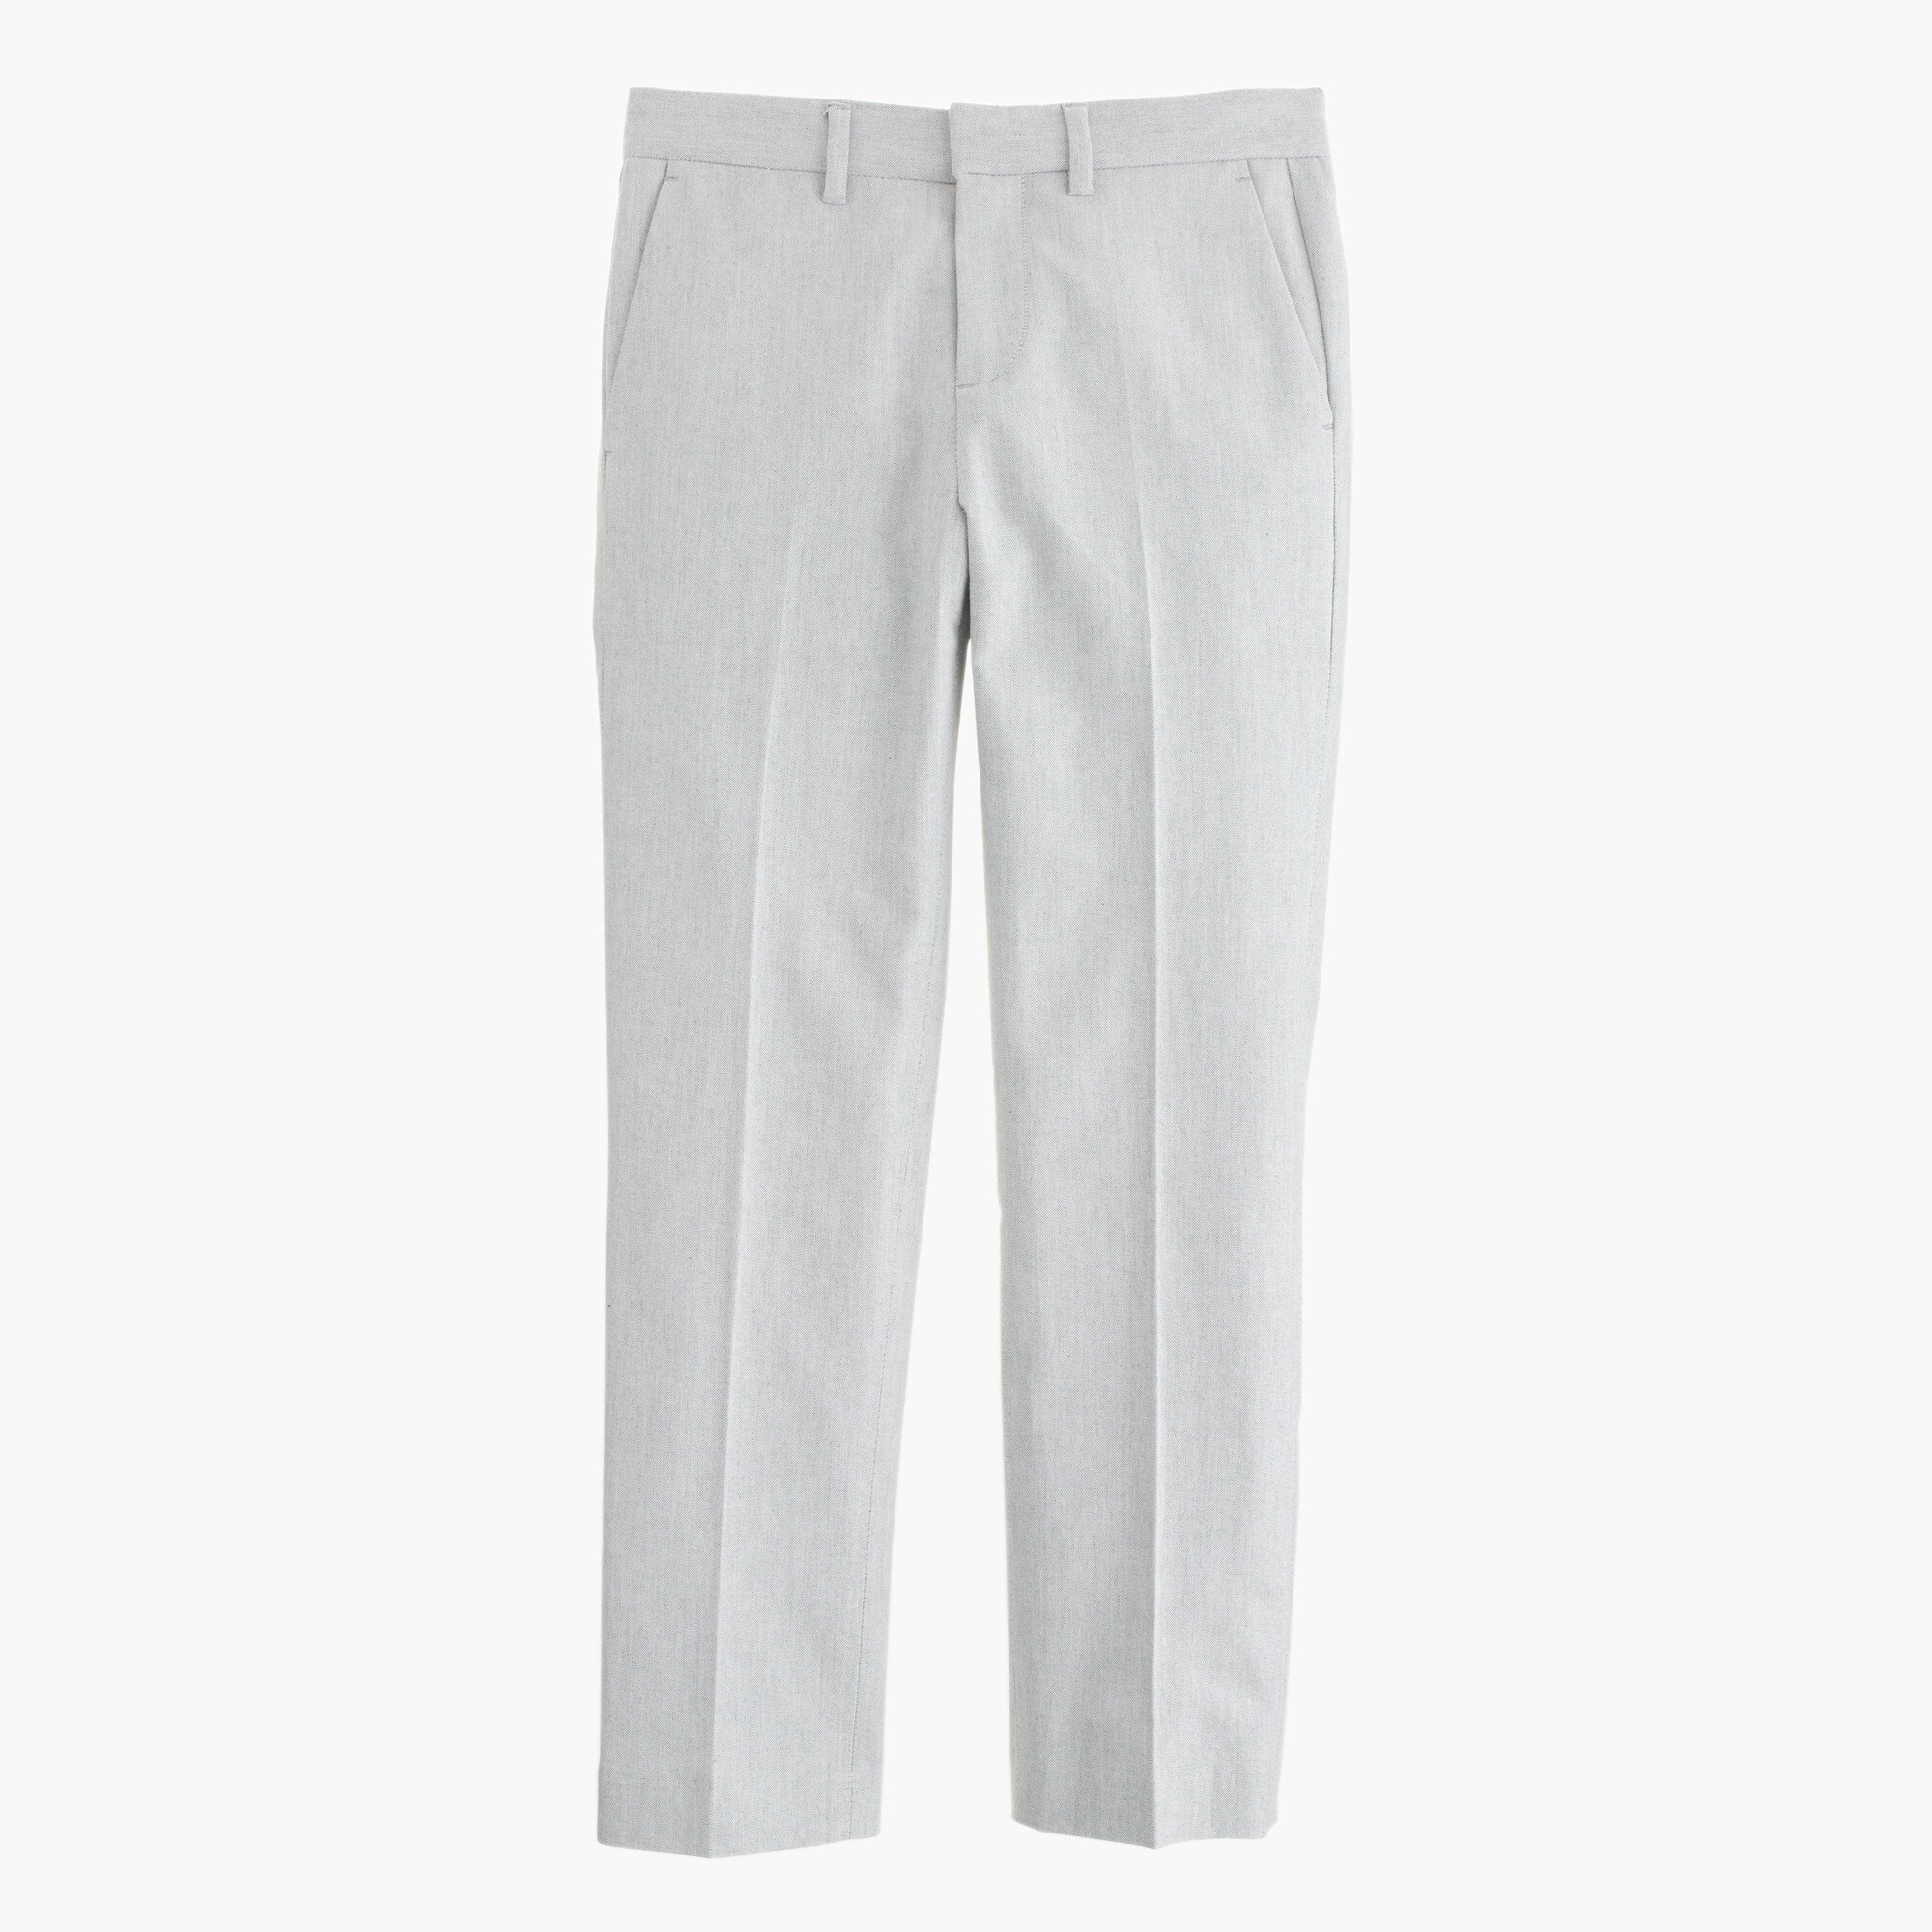 boys' slim ludlow suit pant in oxford cloth : boy dress pants